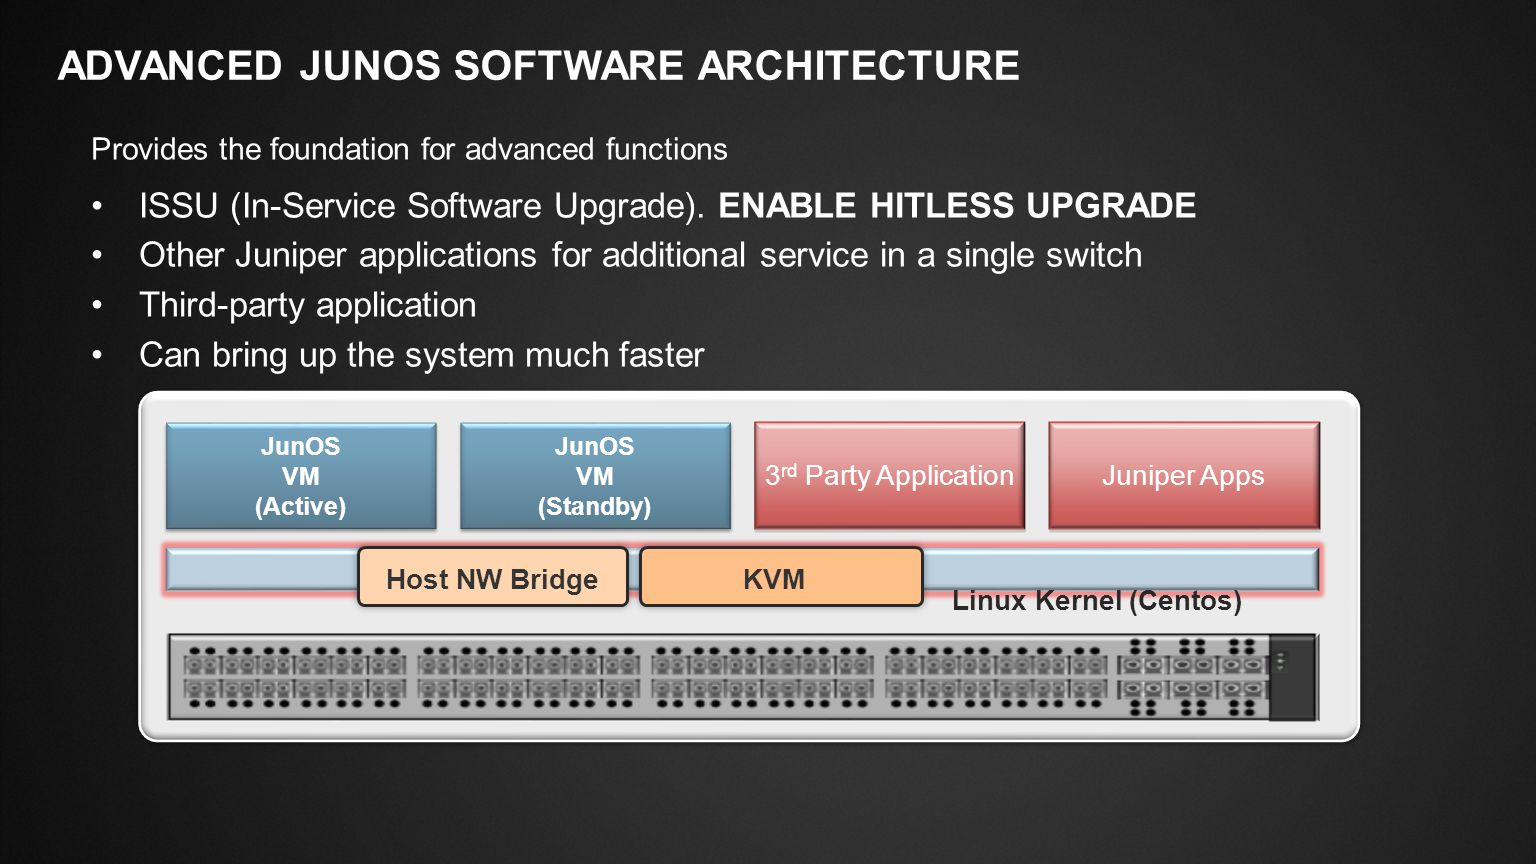 Advanced JUNOS SOFTWARE ARCHITECTURE